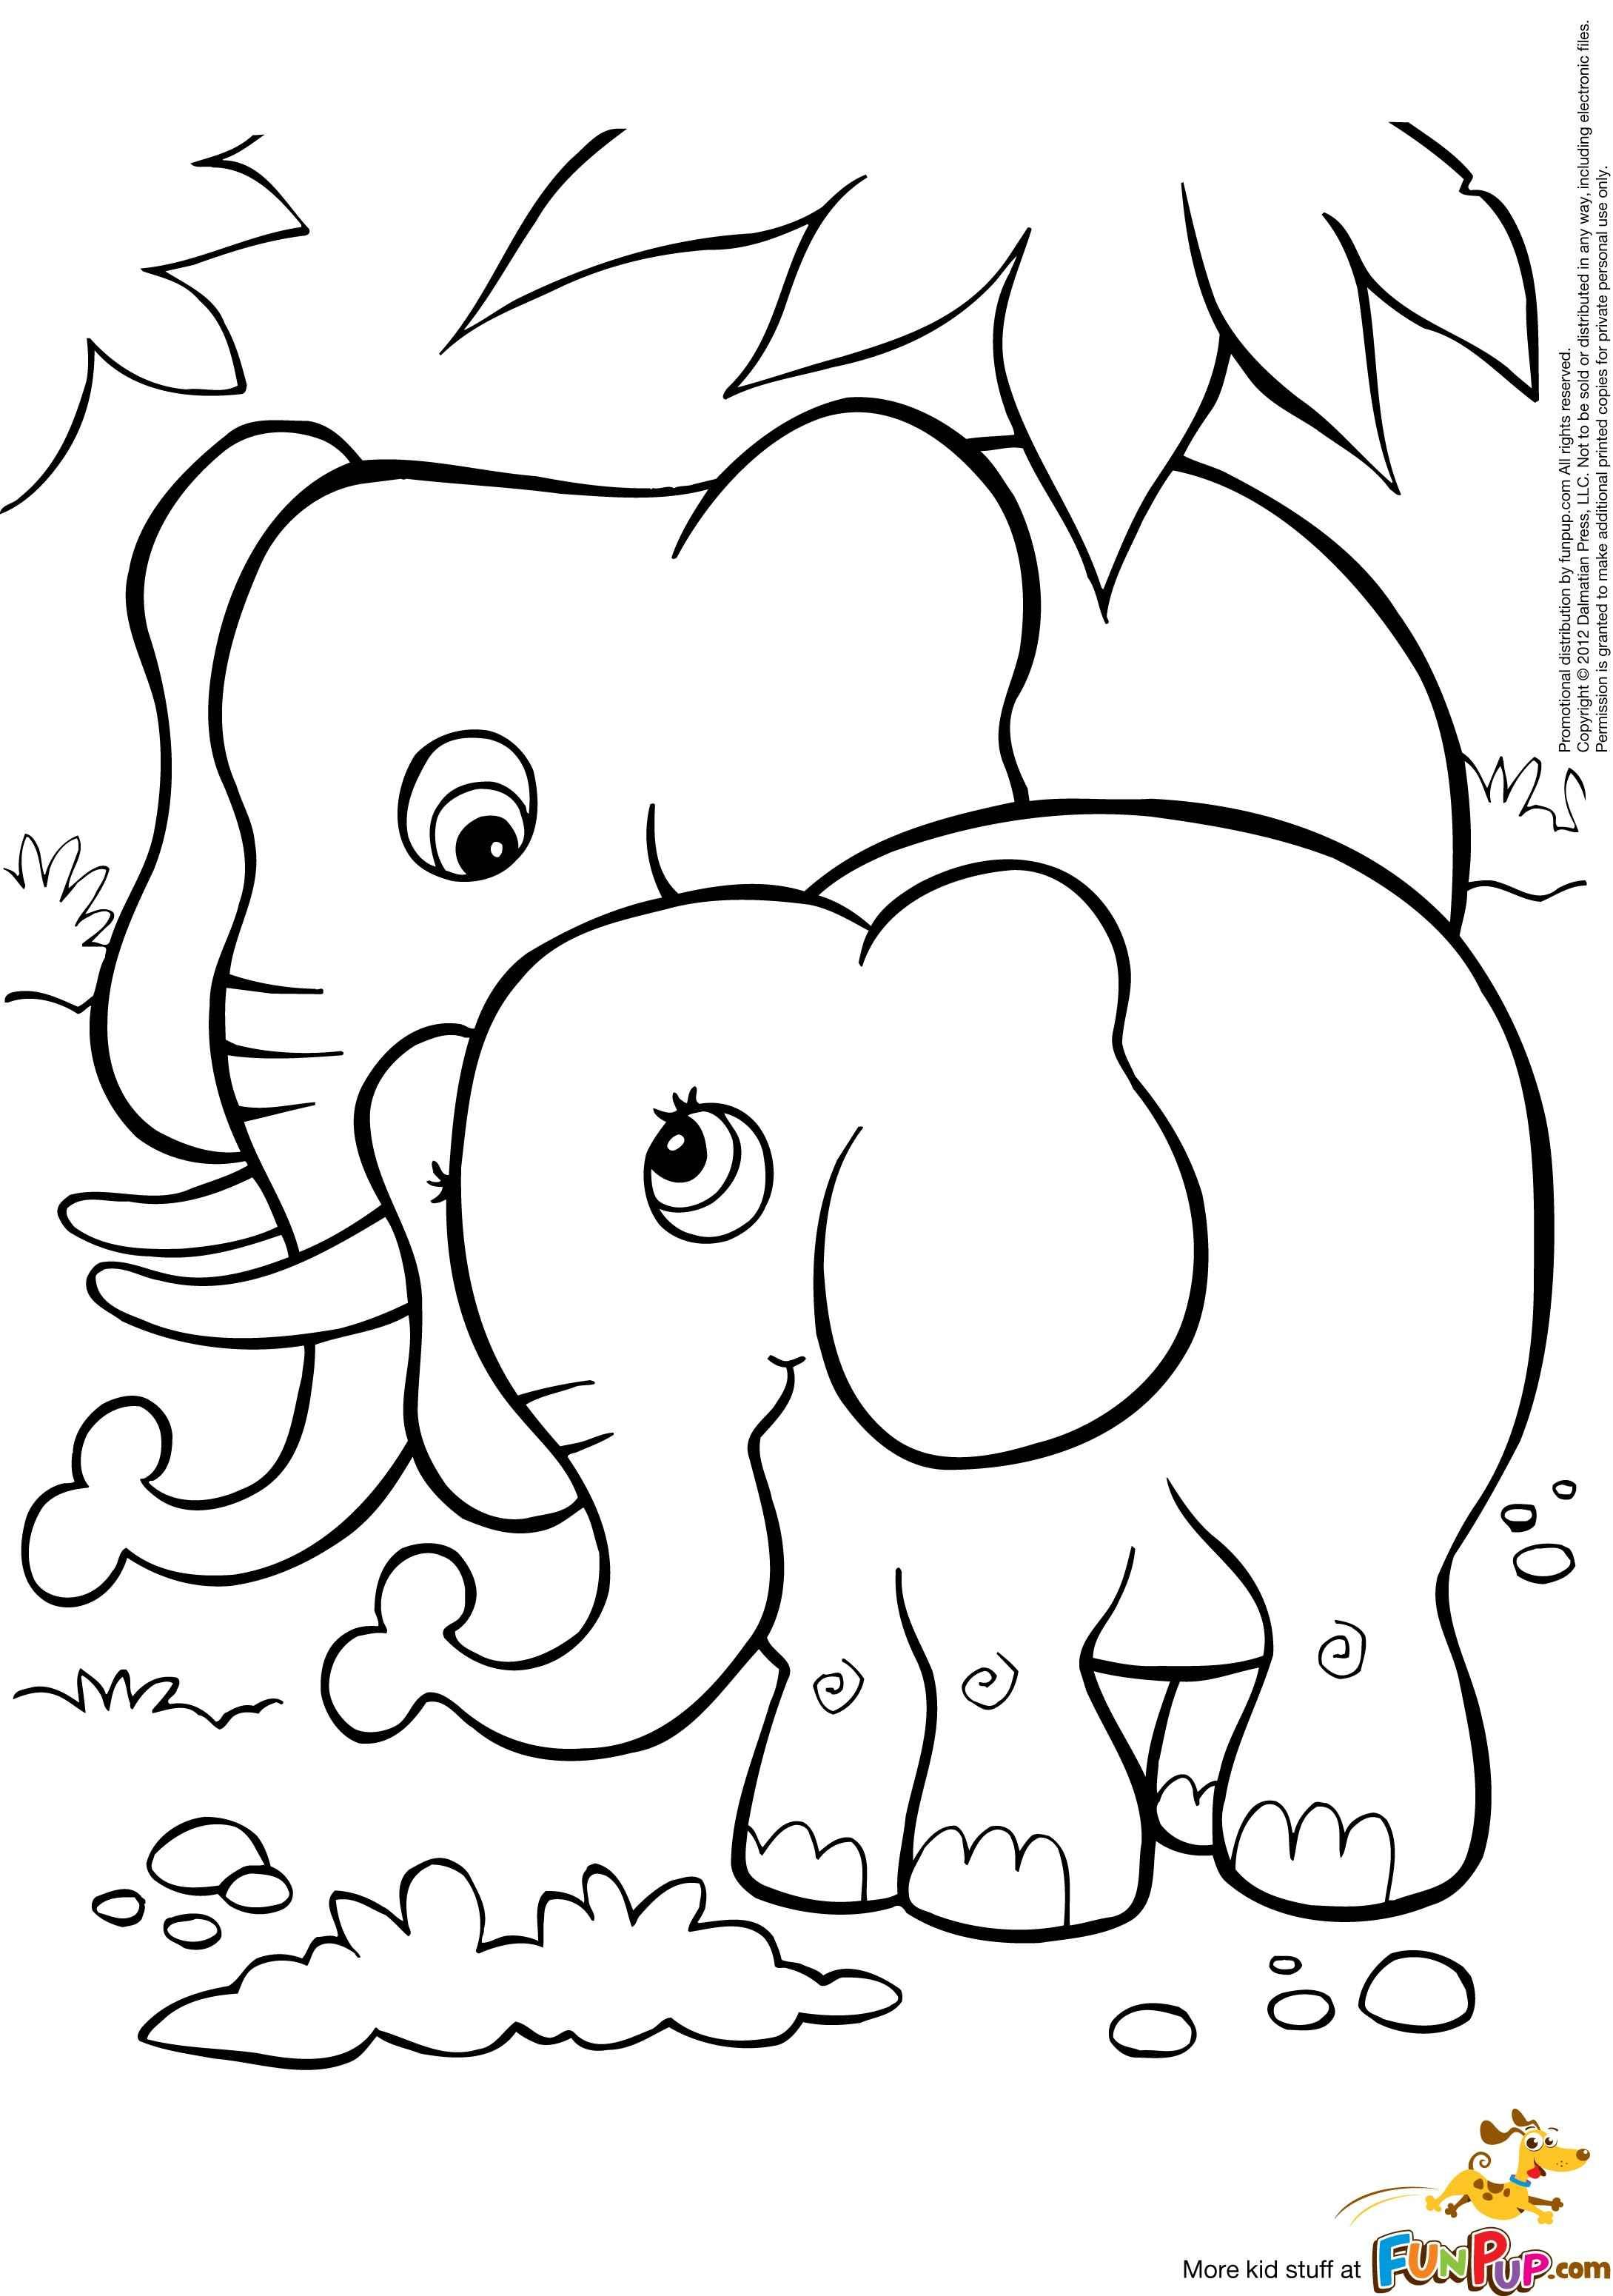 Elephant coloring pages free - Baby Elephant Coloring Page Are Sheets Consisting Of The Cute Baby Elephant Picture At Now Your Kids Can Try Some Sites Offering The Online Coloring Too